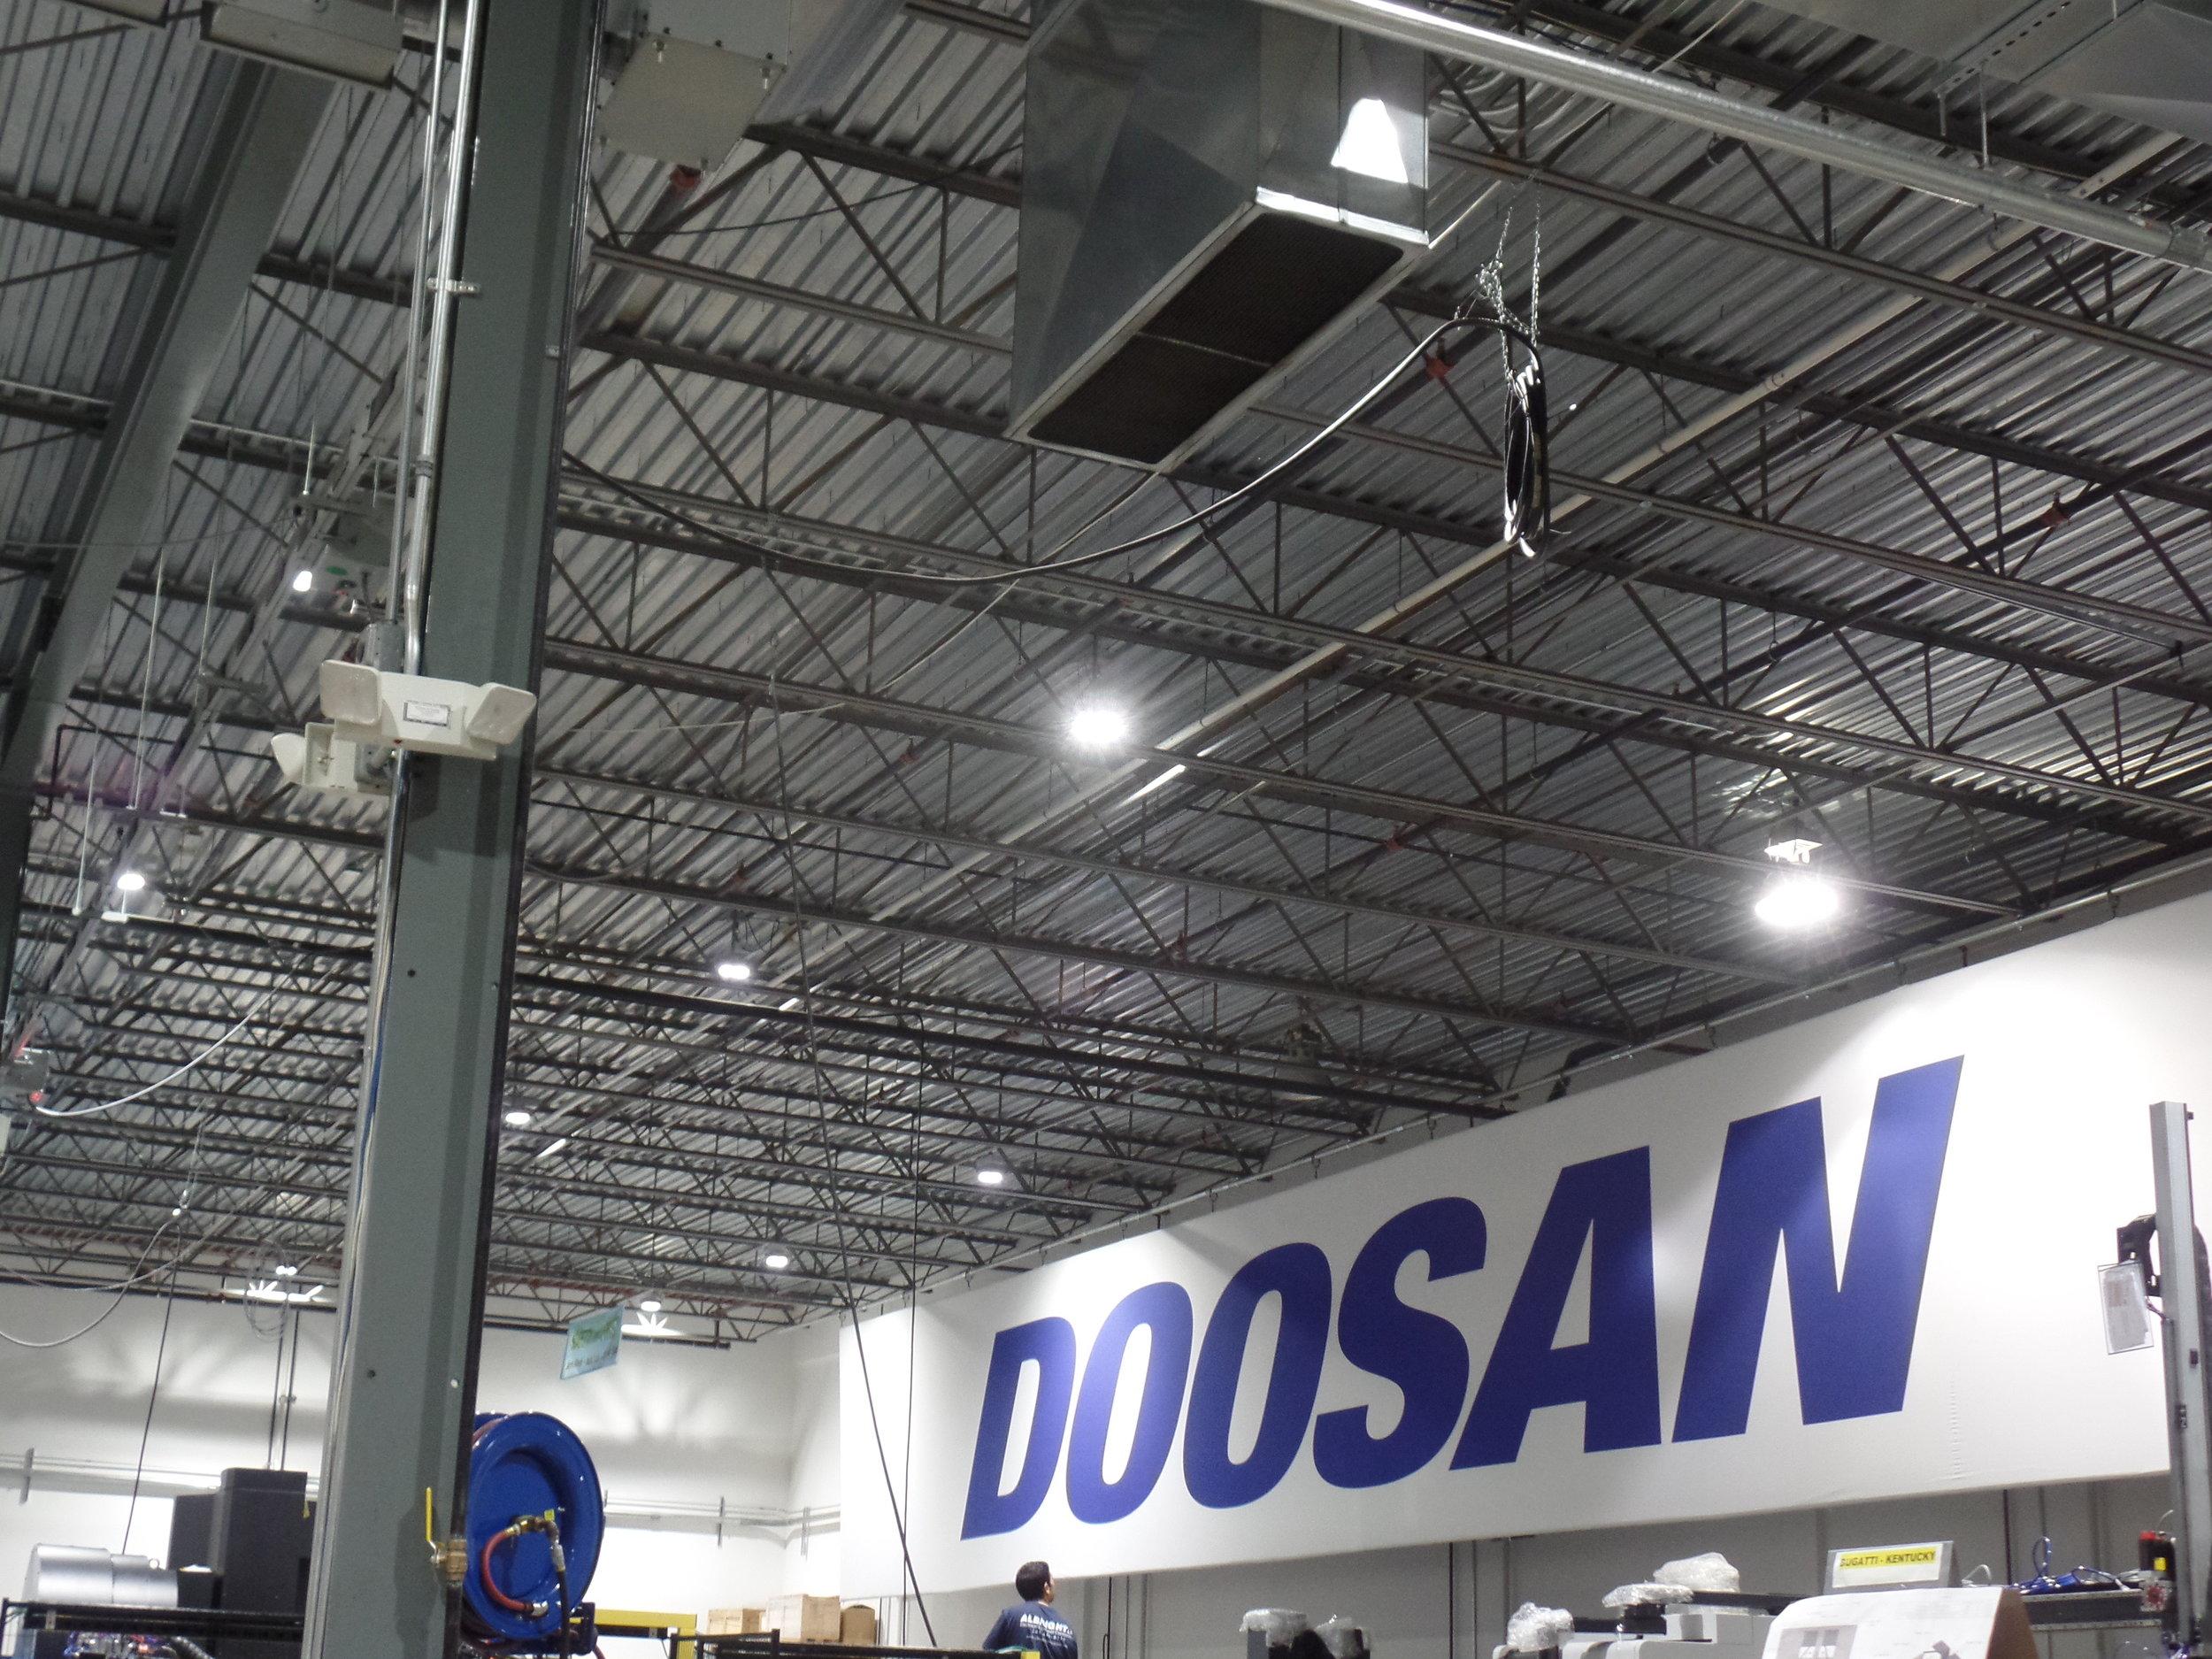 Doosan LED Lighting Retrofit - Albright Energy Solutions -Albright Electric - Mahwah NJ (8).JPG